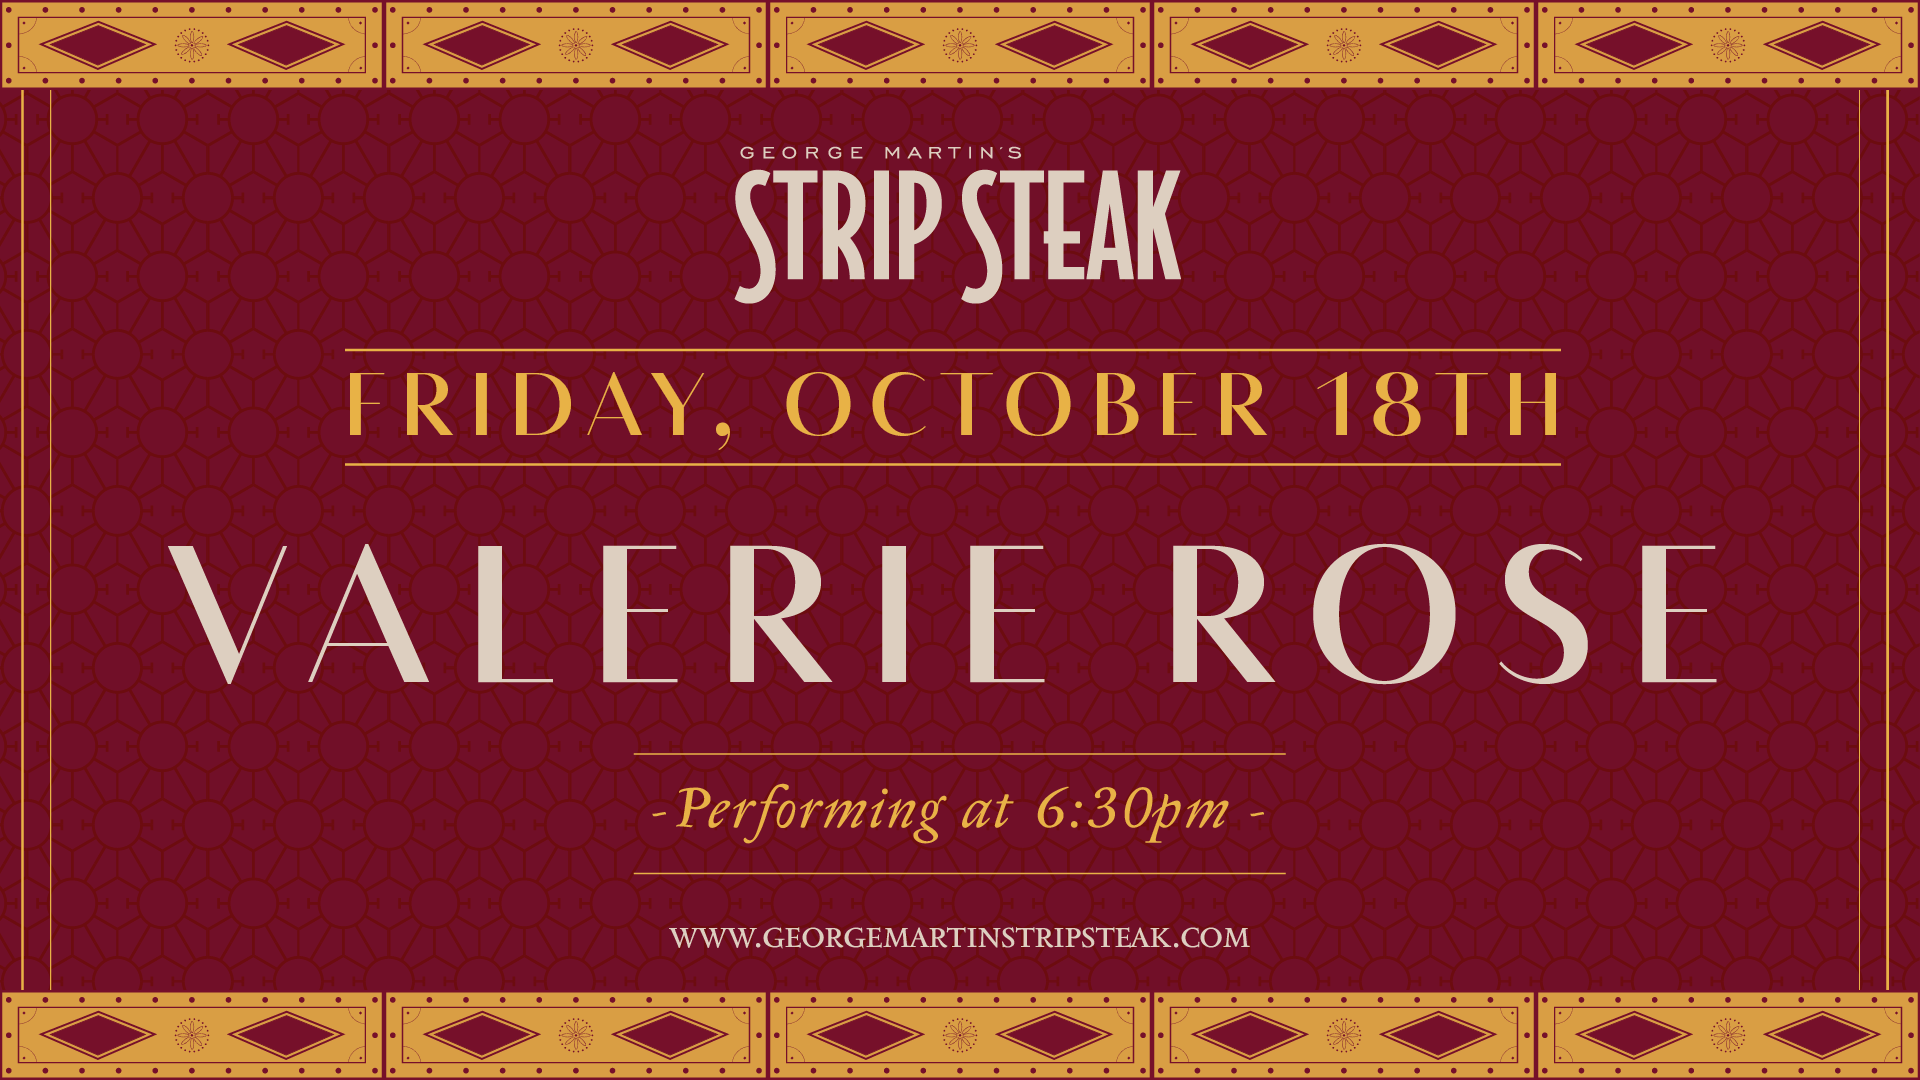 Flyer for Live Music with Valerie Rose at Strip Steak on Friday, October 18th at 6:30pm.